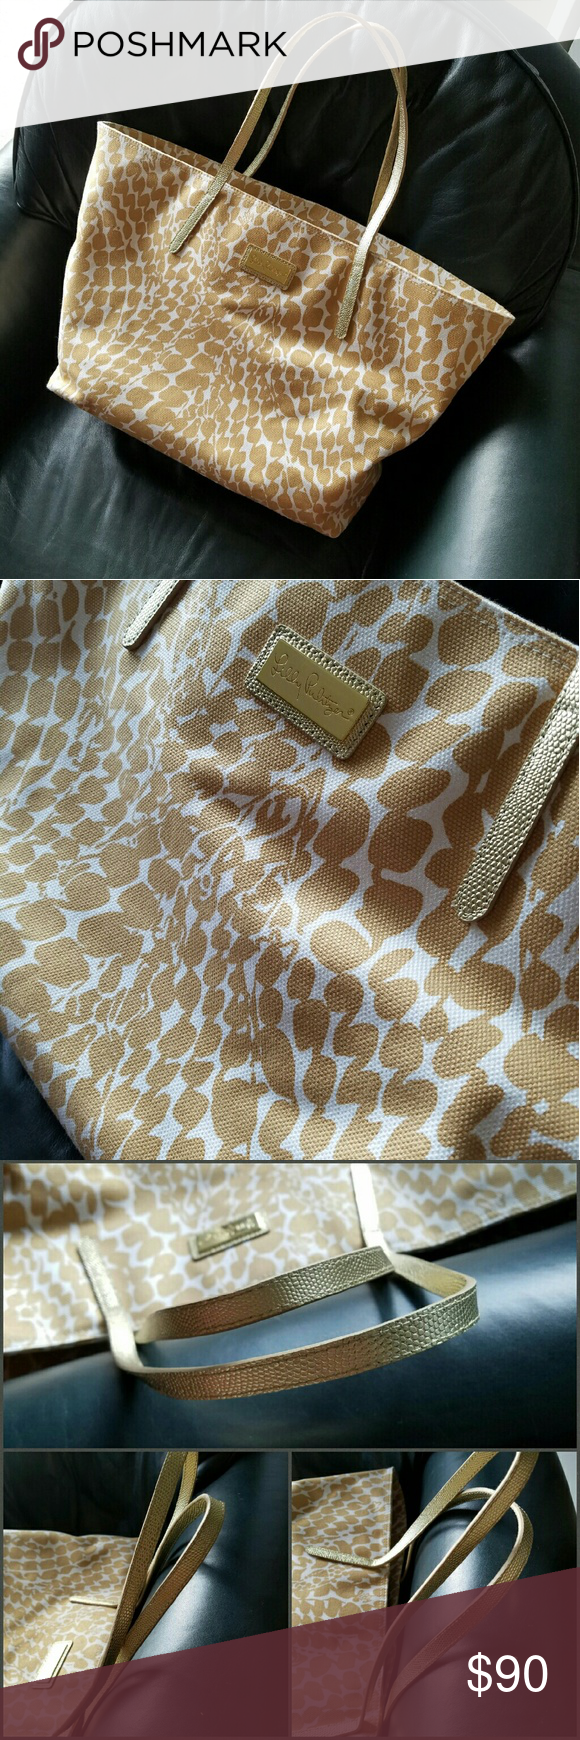 """LILLY PULITZER Gold Giraffe Resort Tote Gently used a few times a couple of Summers ago. Exterior is in excellent condition and shows no signs of wear, stains, pilling or damages. Handles are in excellent condition. Interior is in good condition with some small stains as shown in picture 4. Approximately 13"""" high x 20"""" long from middle section of bag x 5 1/2"""" depth. Lilly Pulitzer Bags Totes"""